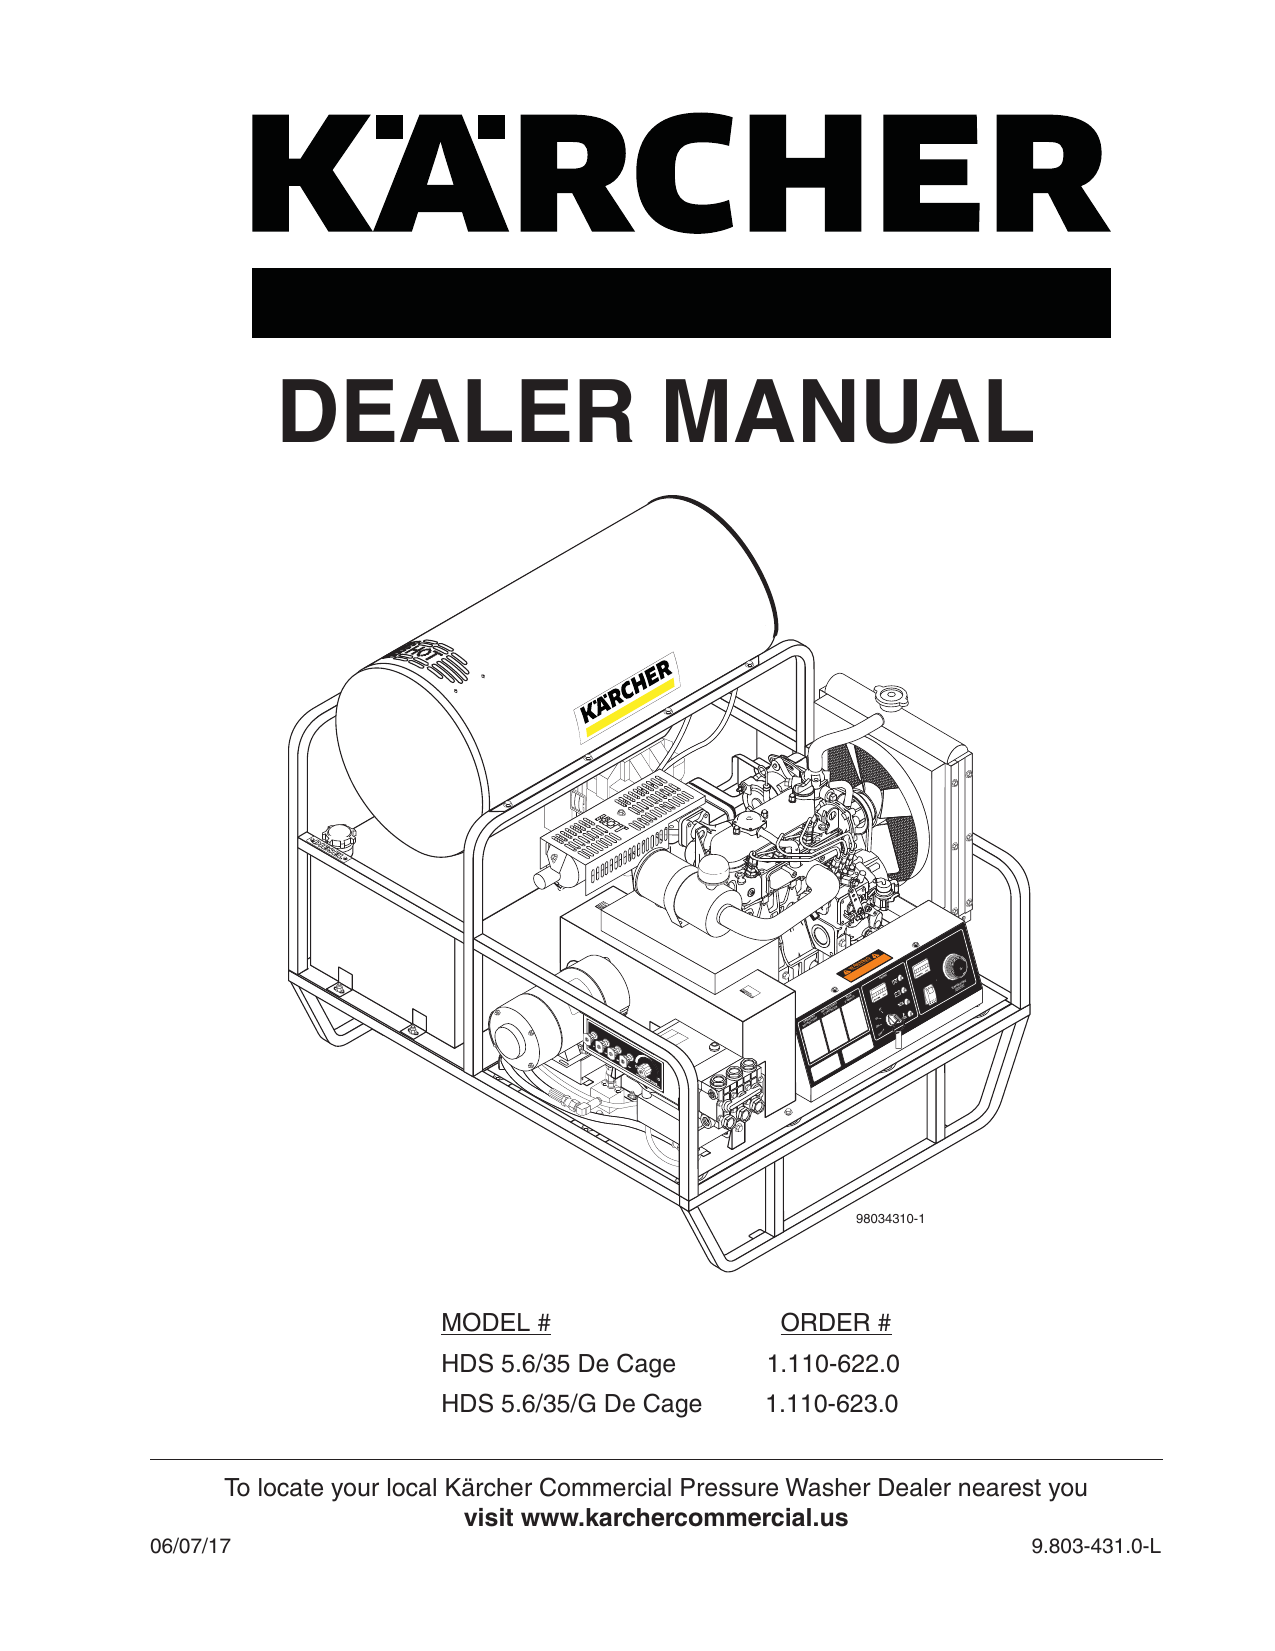 Karcher Skid Unit Fuel Pump Wiring Diagram on